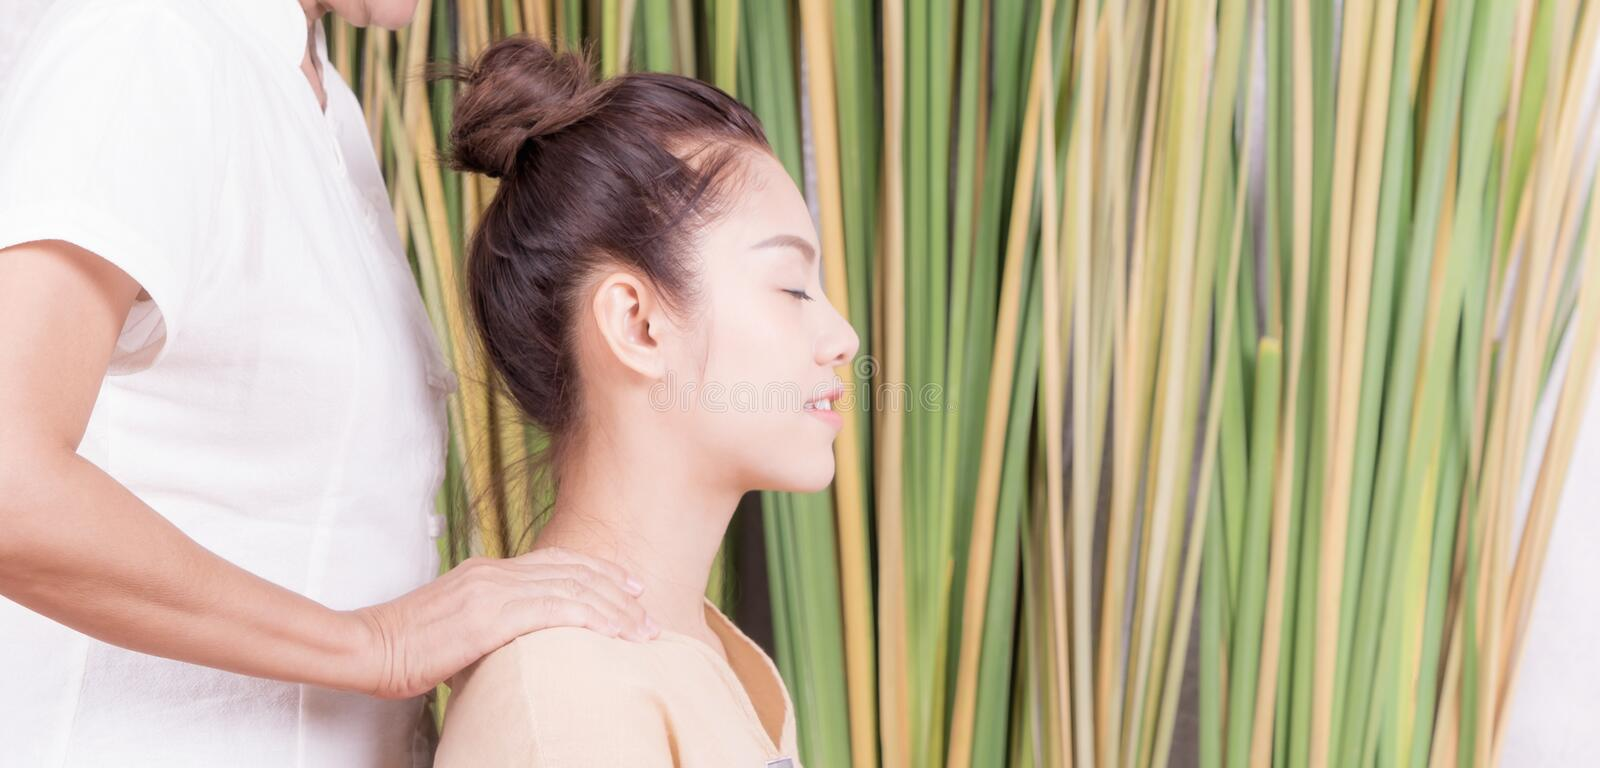 Women is getting neck shoulder massage. Women is getting neck and shoulder massage royalty free stock image